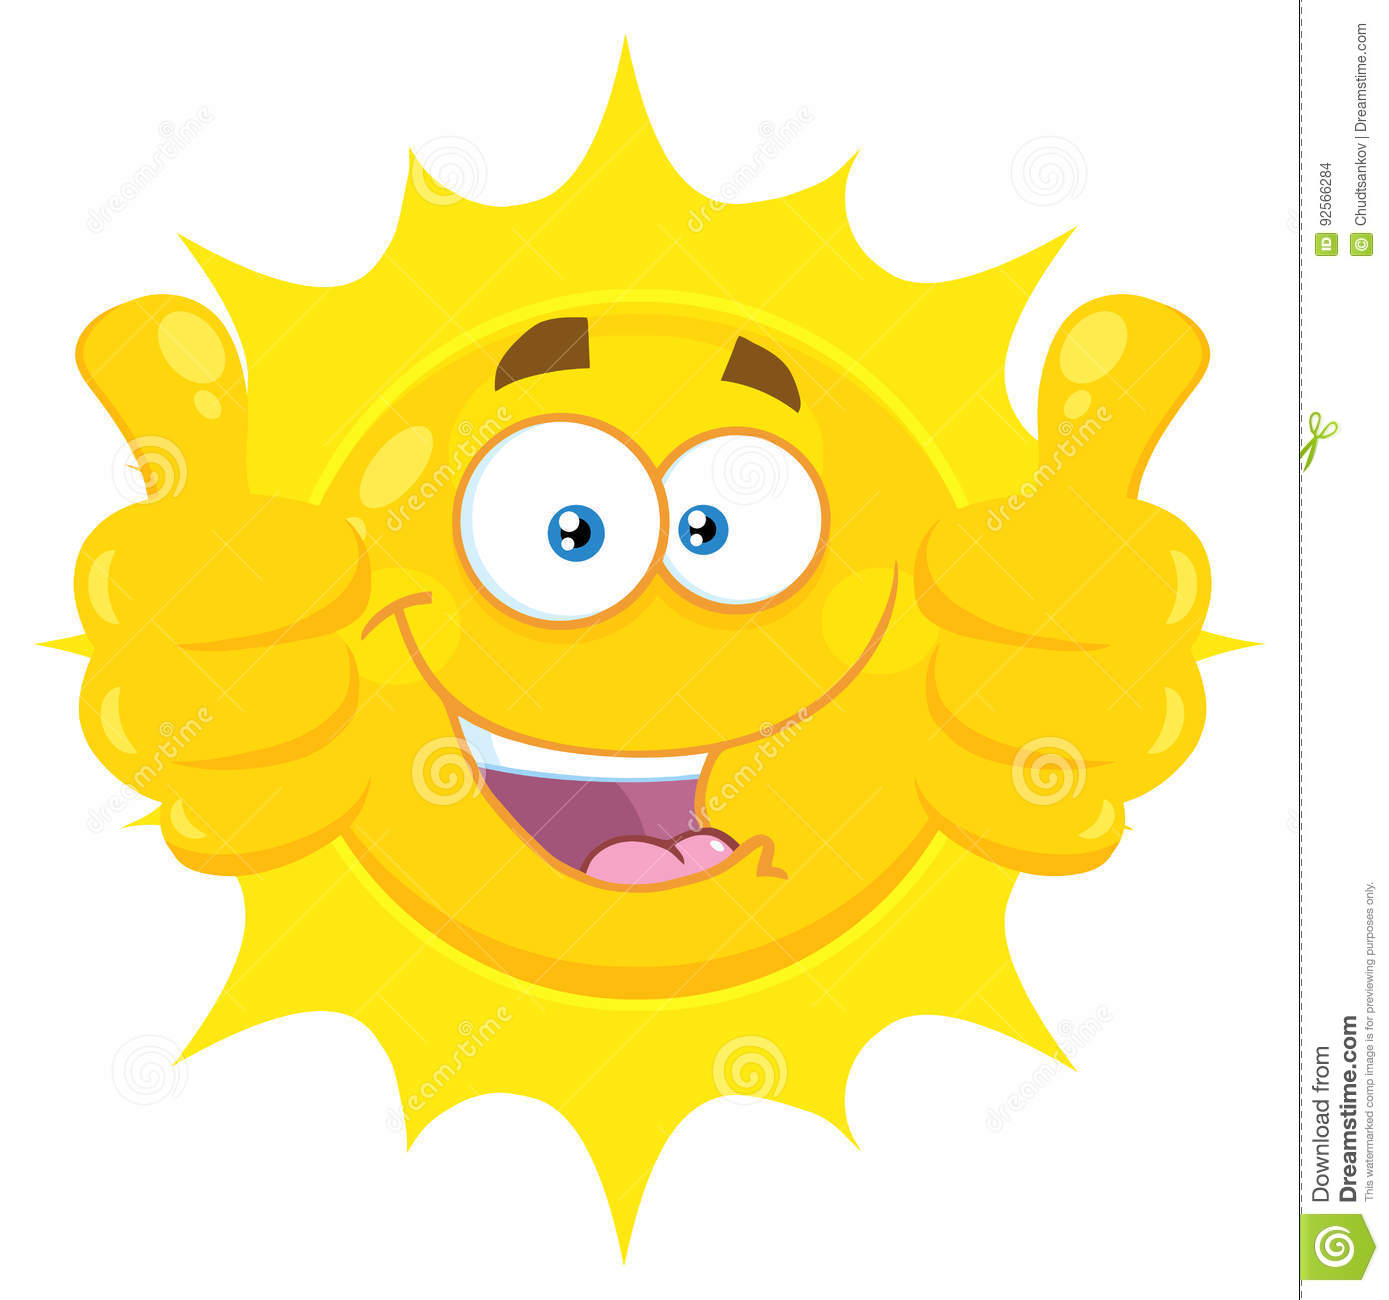 b975706c15b5 Smiling Yellow Sun Cartoon Emoji Face Character Giving Two Thumbs Up ...